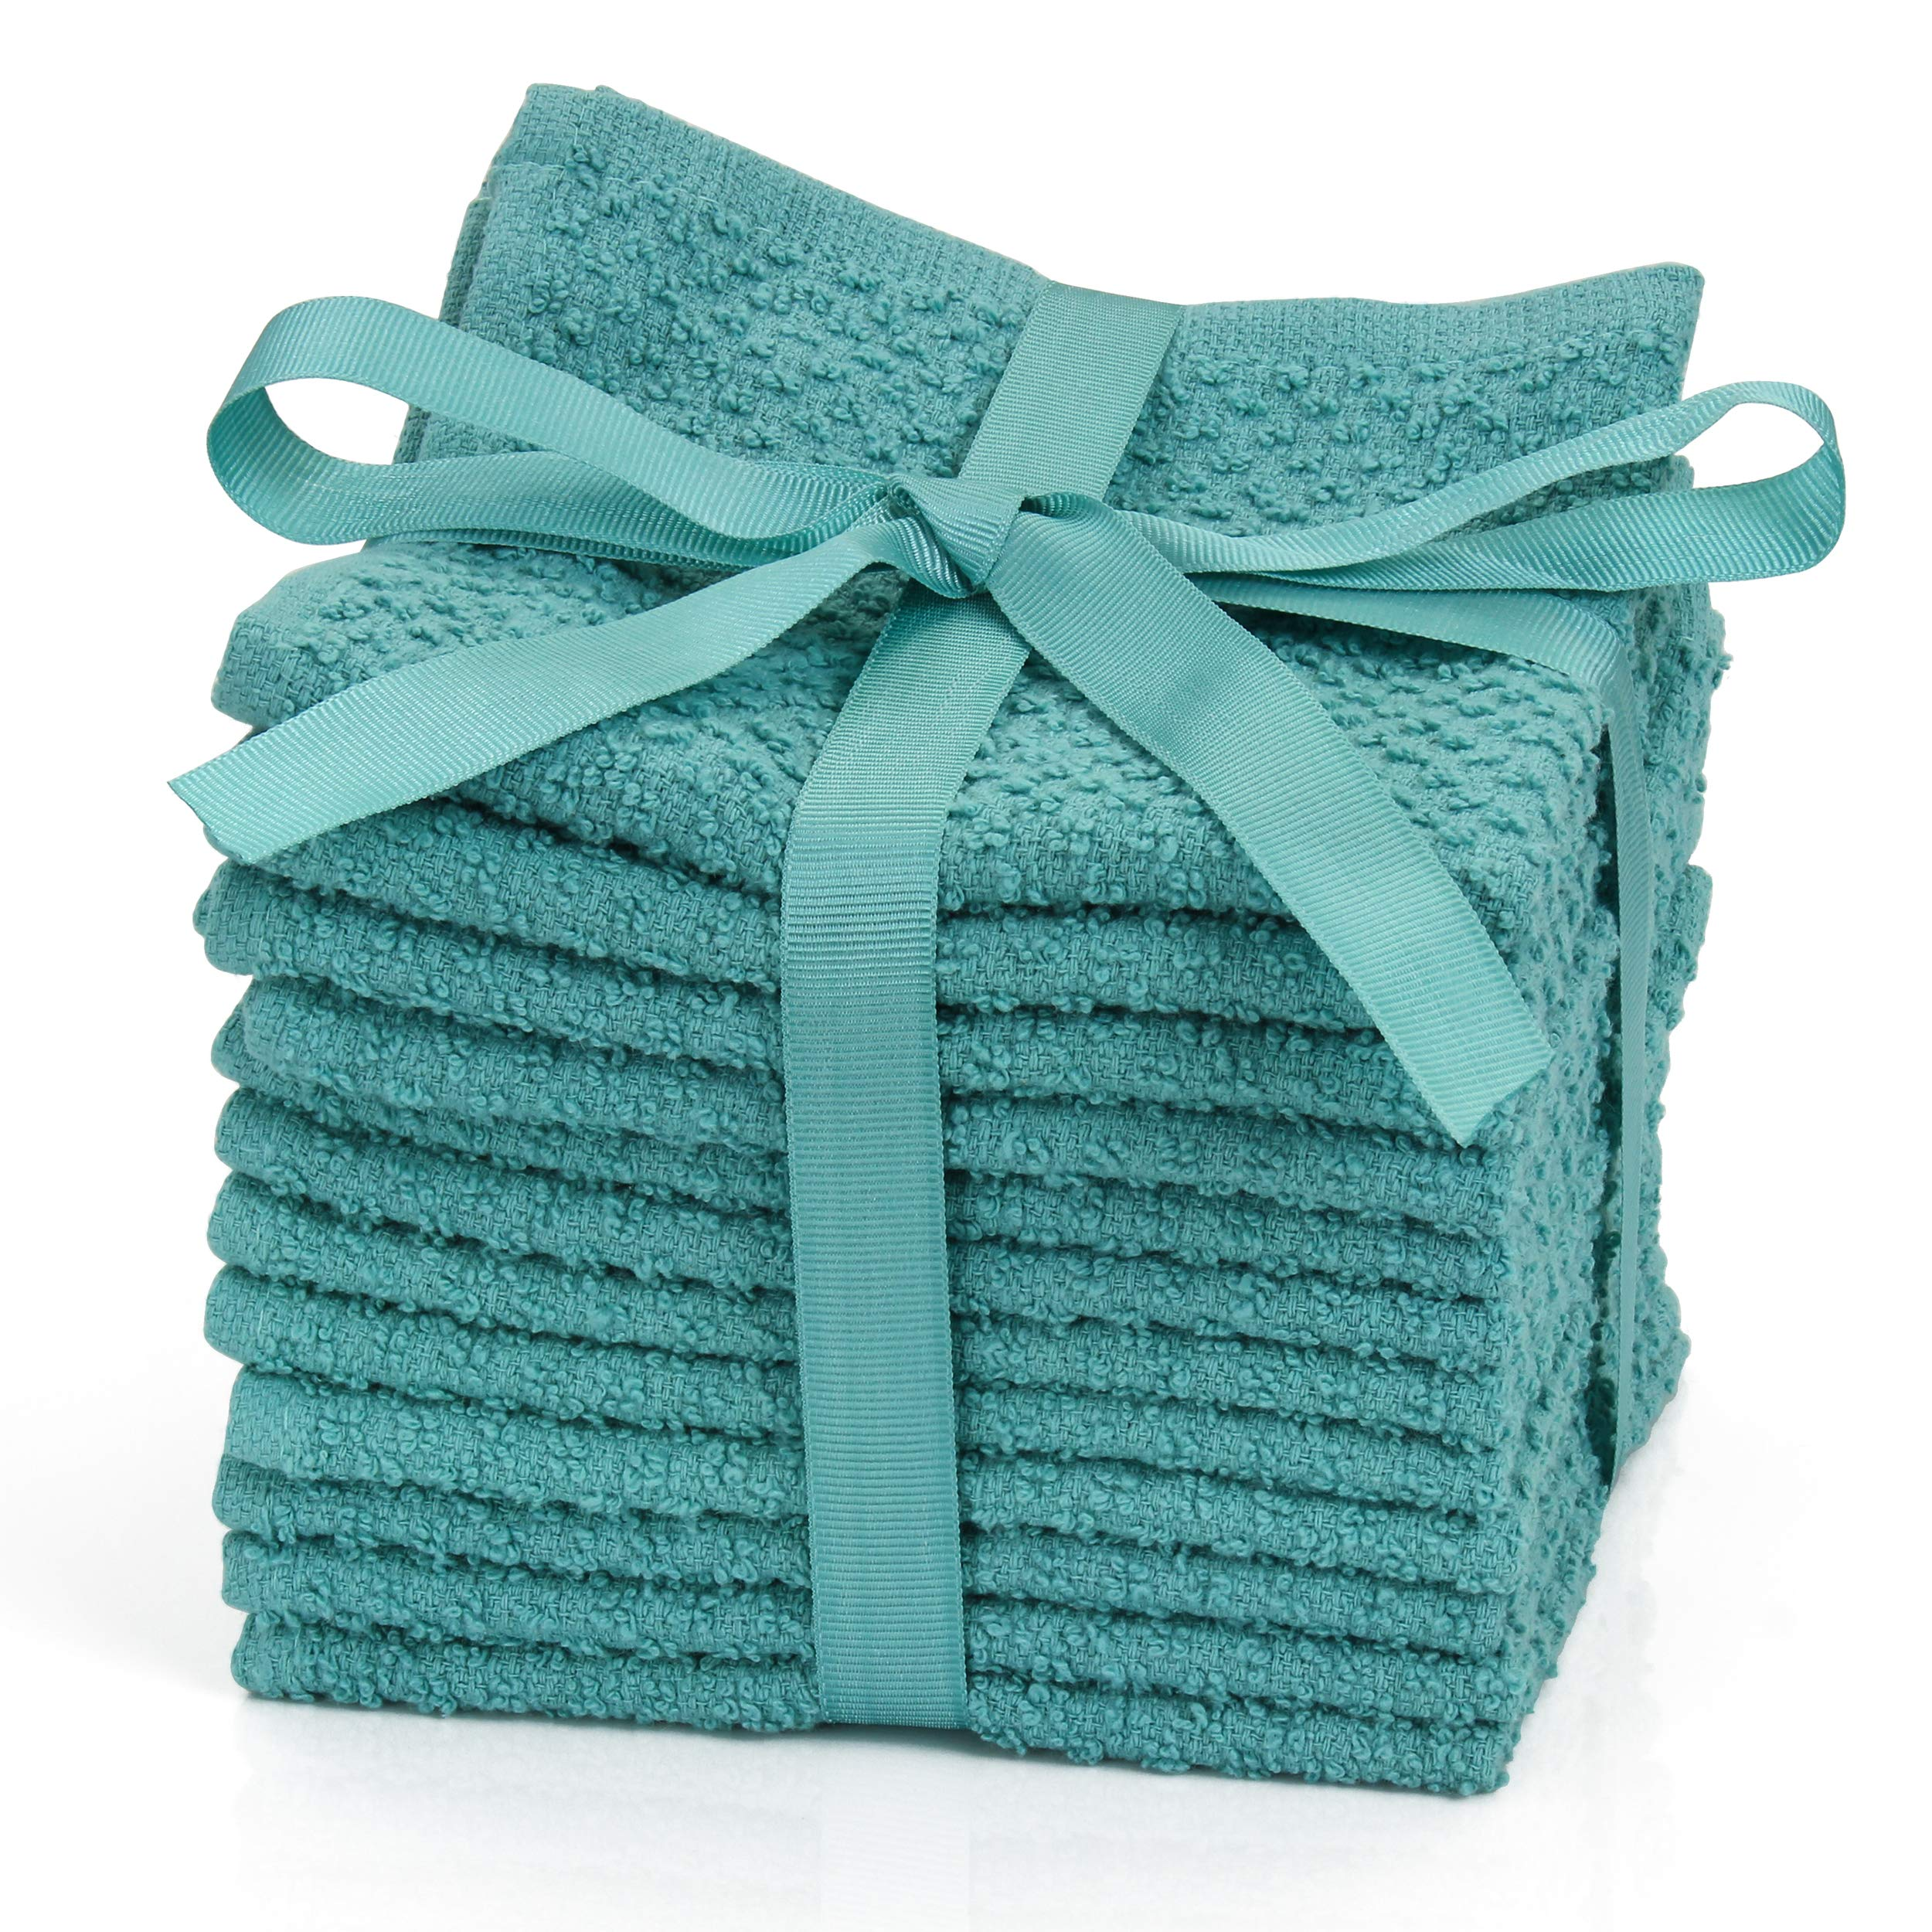 HomeCrate Solid 100% Cotton Super Soft Washcloths, 12 Piece Set, 12'' x 12'' - Turquoise by HomeCrate